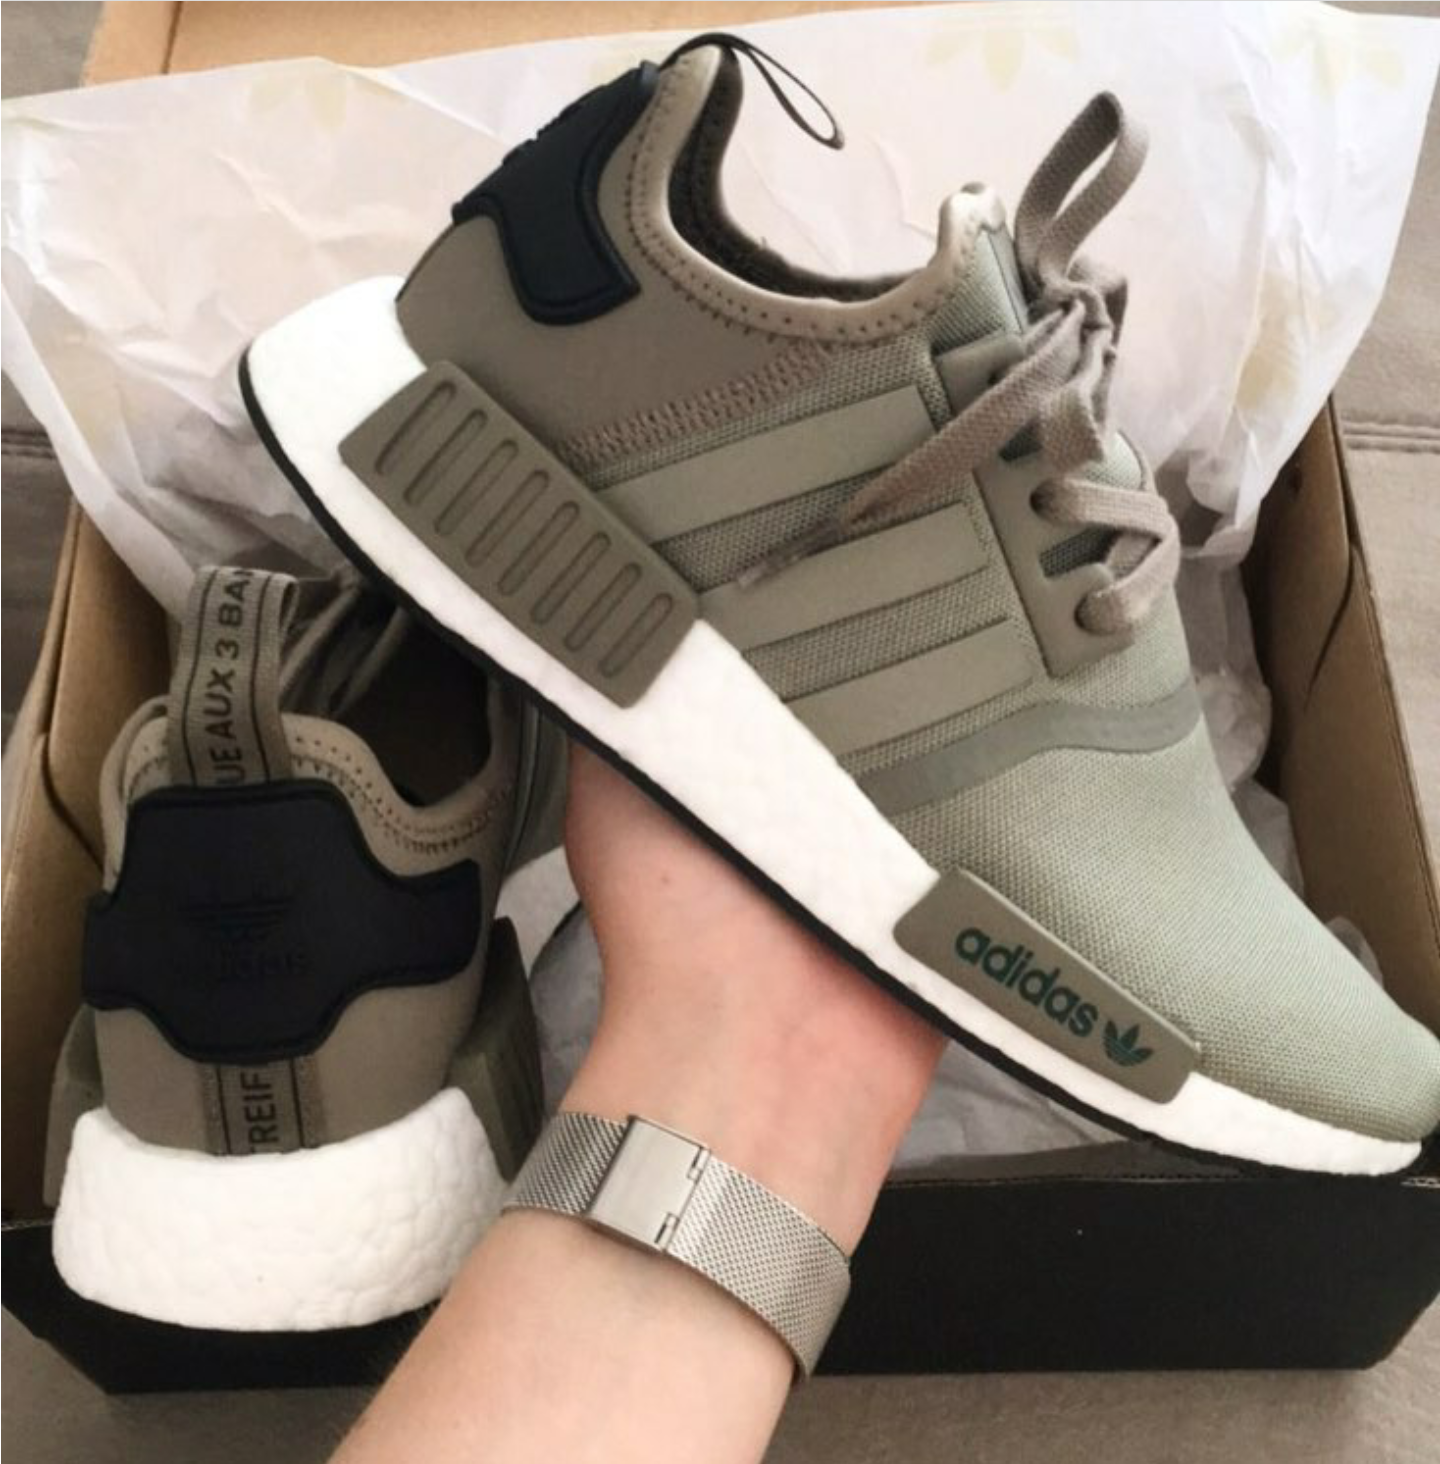 Adidas NMDs Instagram: @brittany_dawn_fitness | shoes